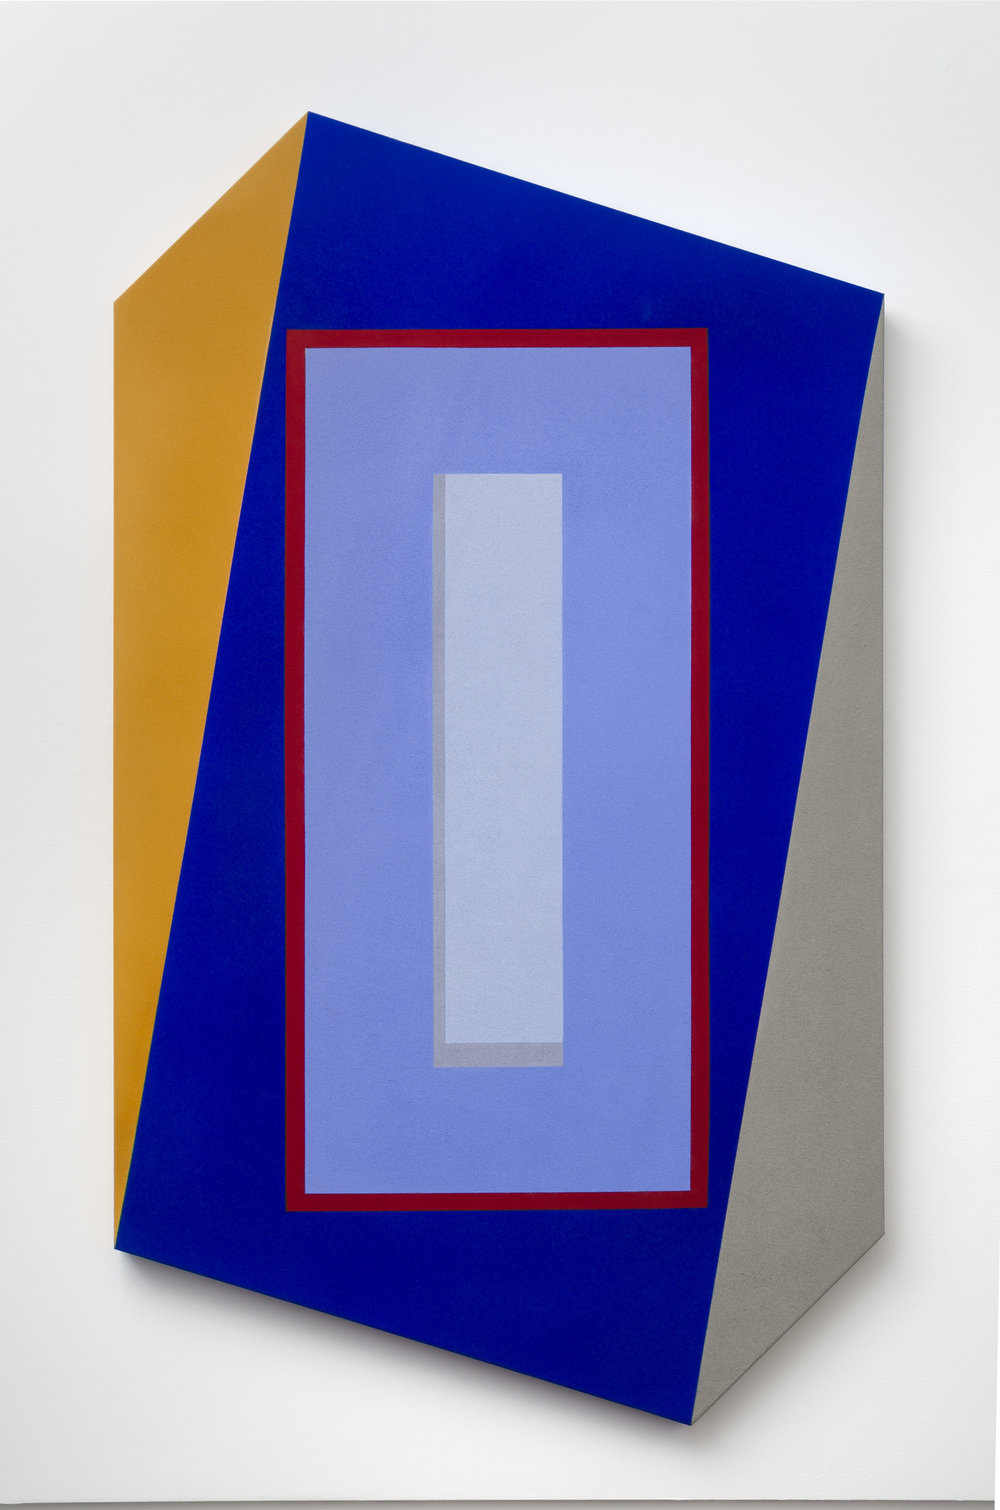 Mokha Laget, b. 1959   Unbound , 2018  acrylic, pigment, flashe on shaped canvas  60 x 36 inches; 152.4 x 91.4 centimeters